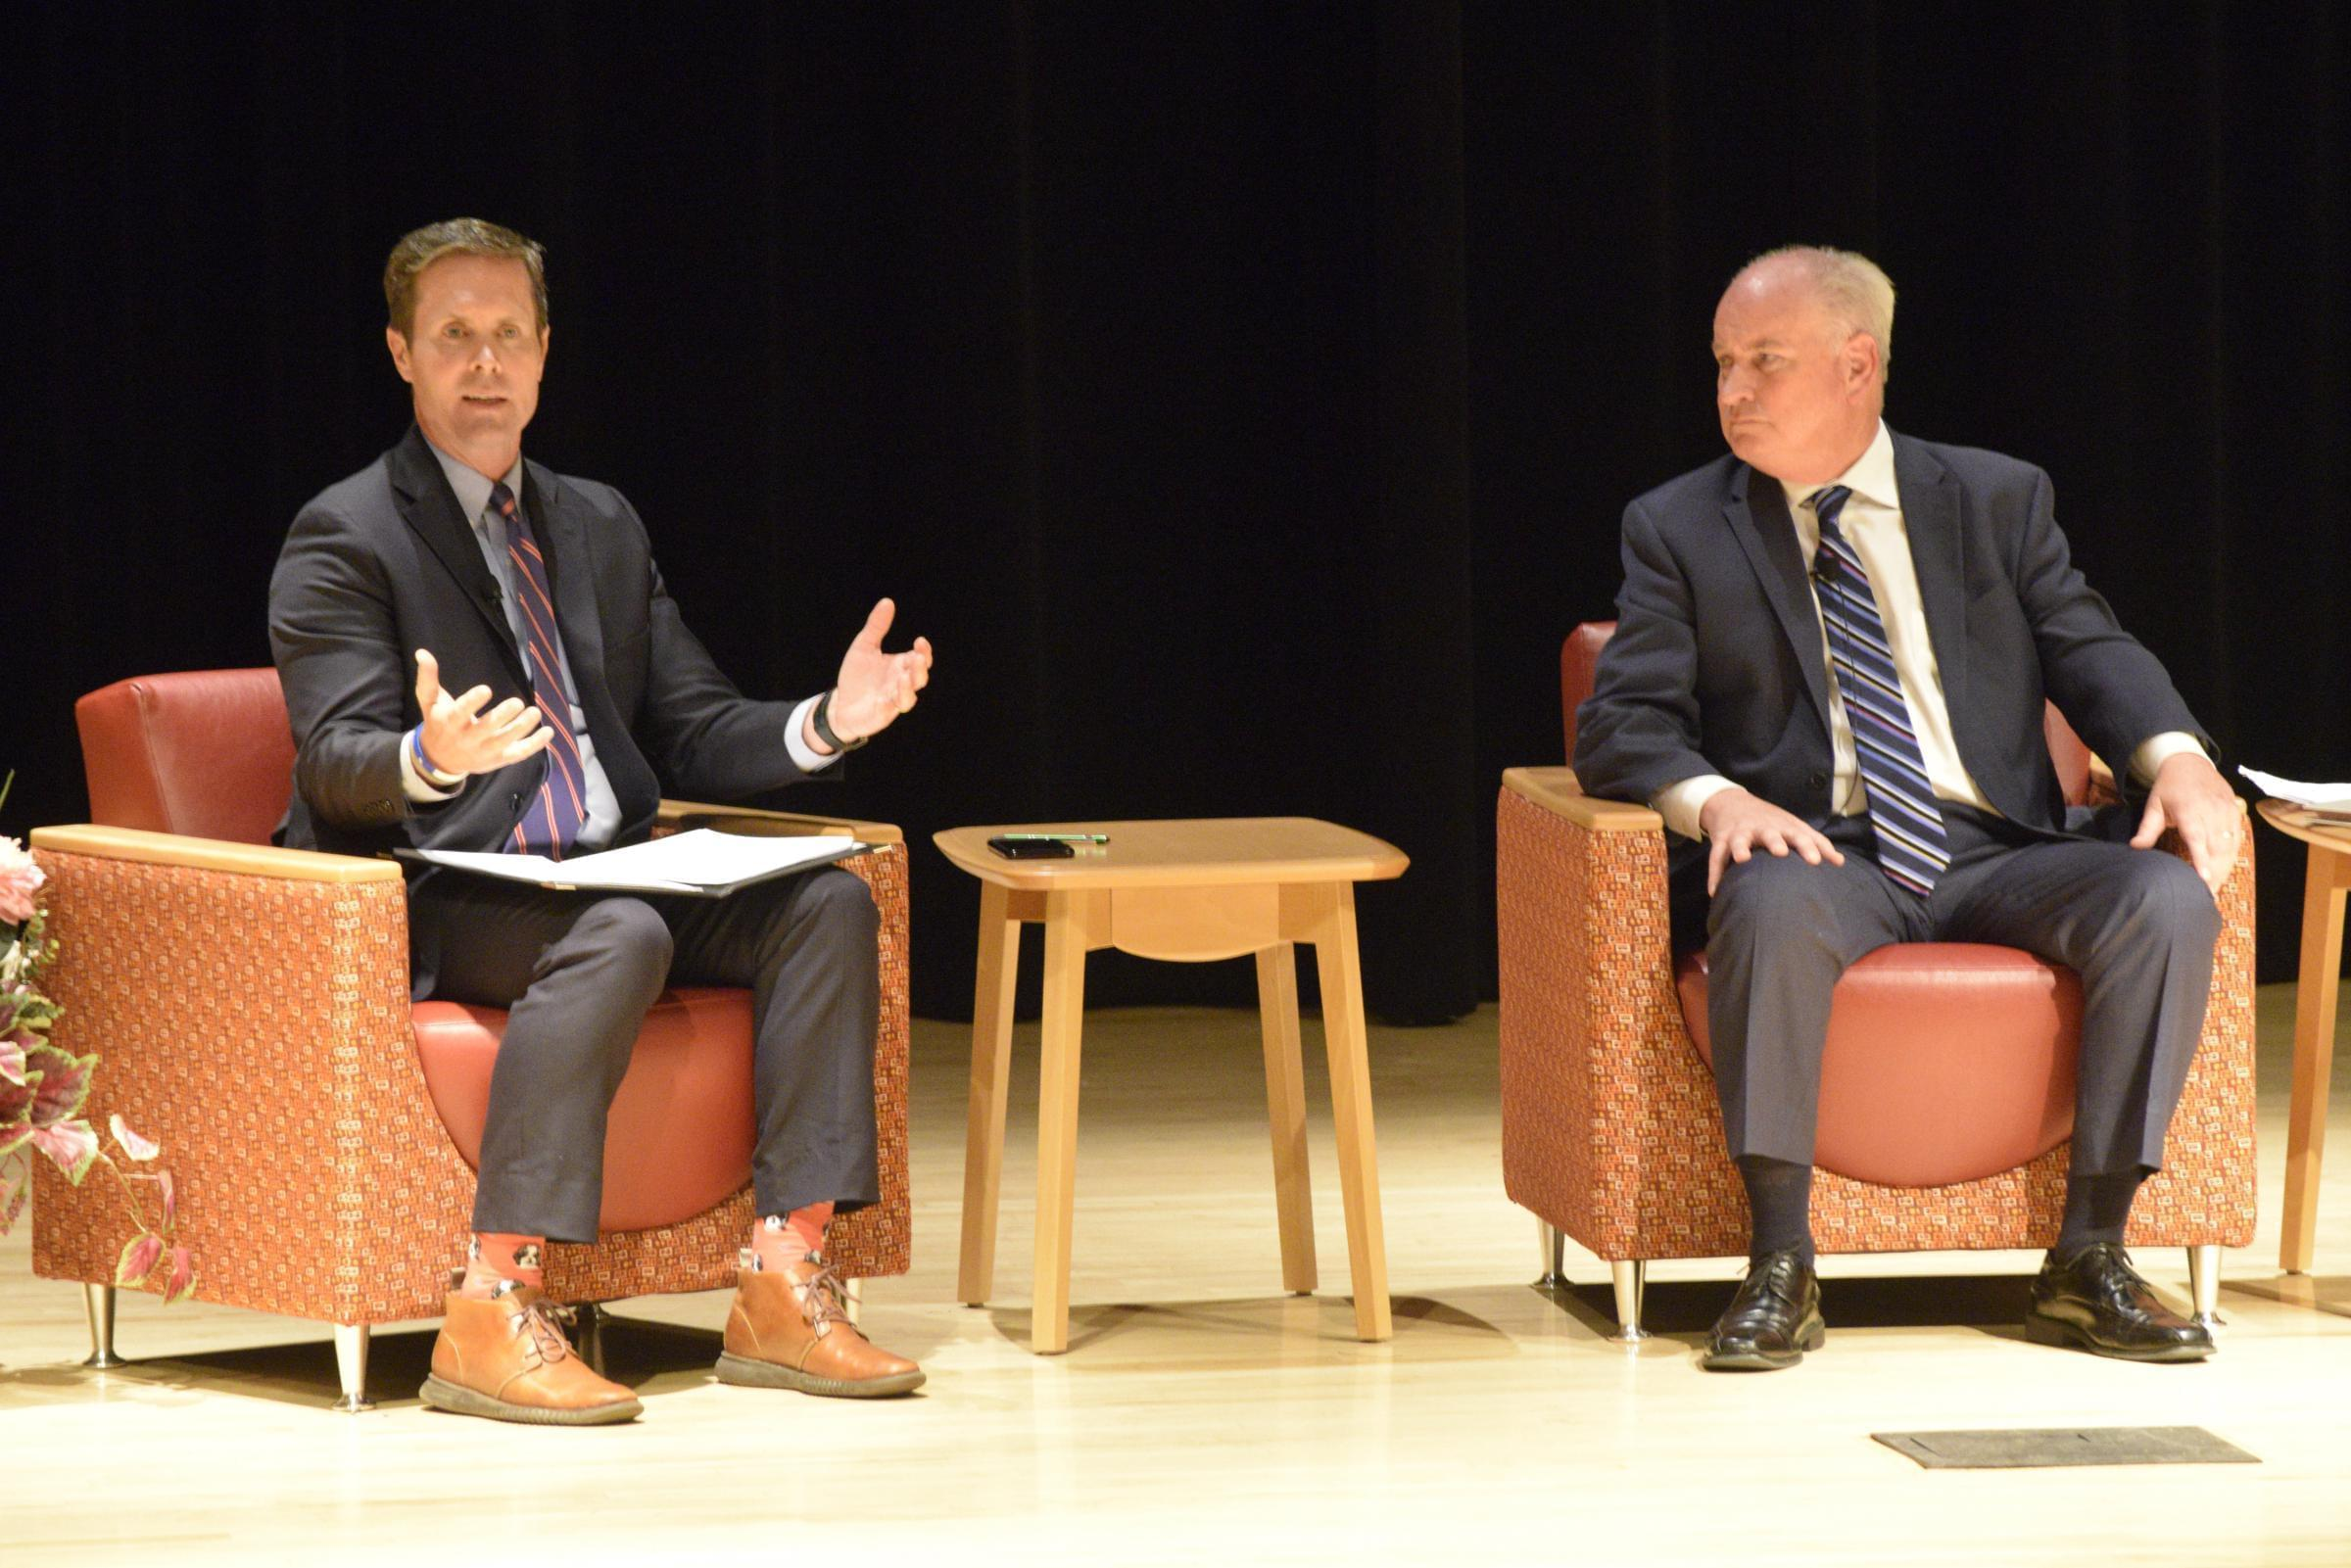 U.S. Rep. Rodney Davis, left, and state Rep. Dan Brady at the Open Government Night event Monday, Nov. 25, 2019, in Normal.